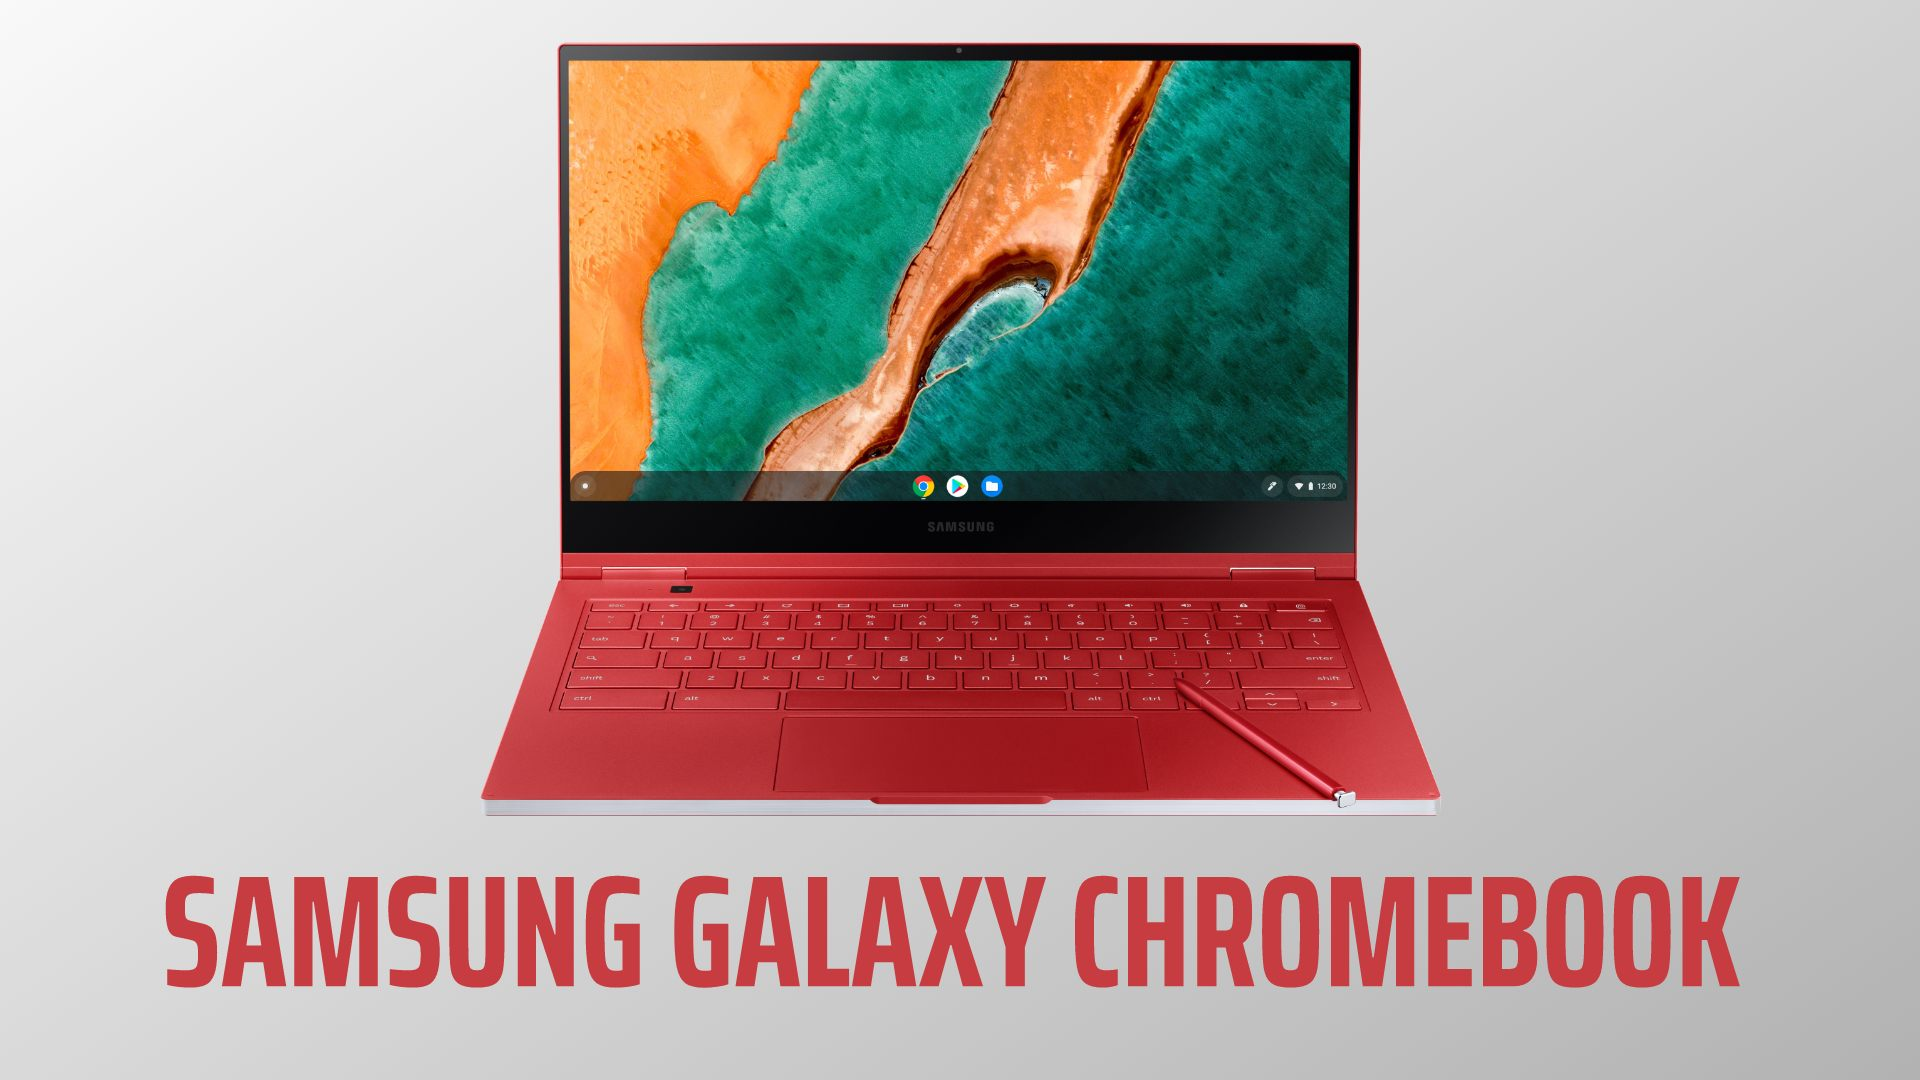 The first Chromebook to get an AMOLED display is Samsung's thin & powerful Galaxy Chromebook